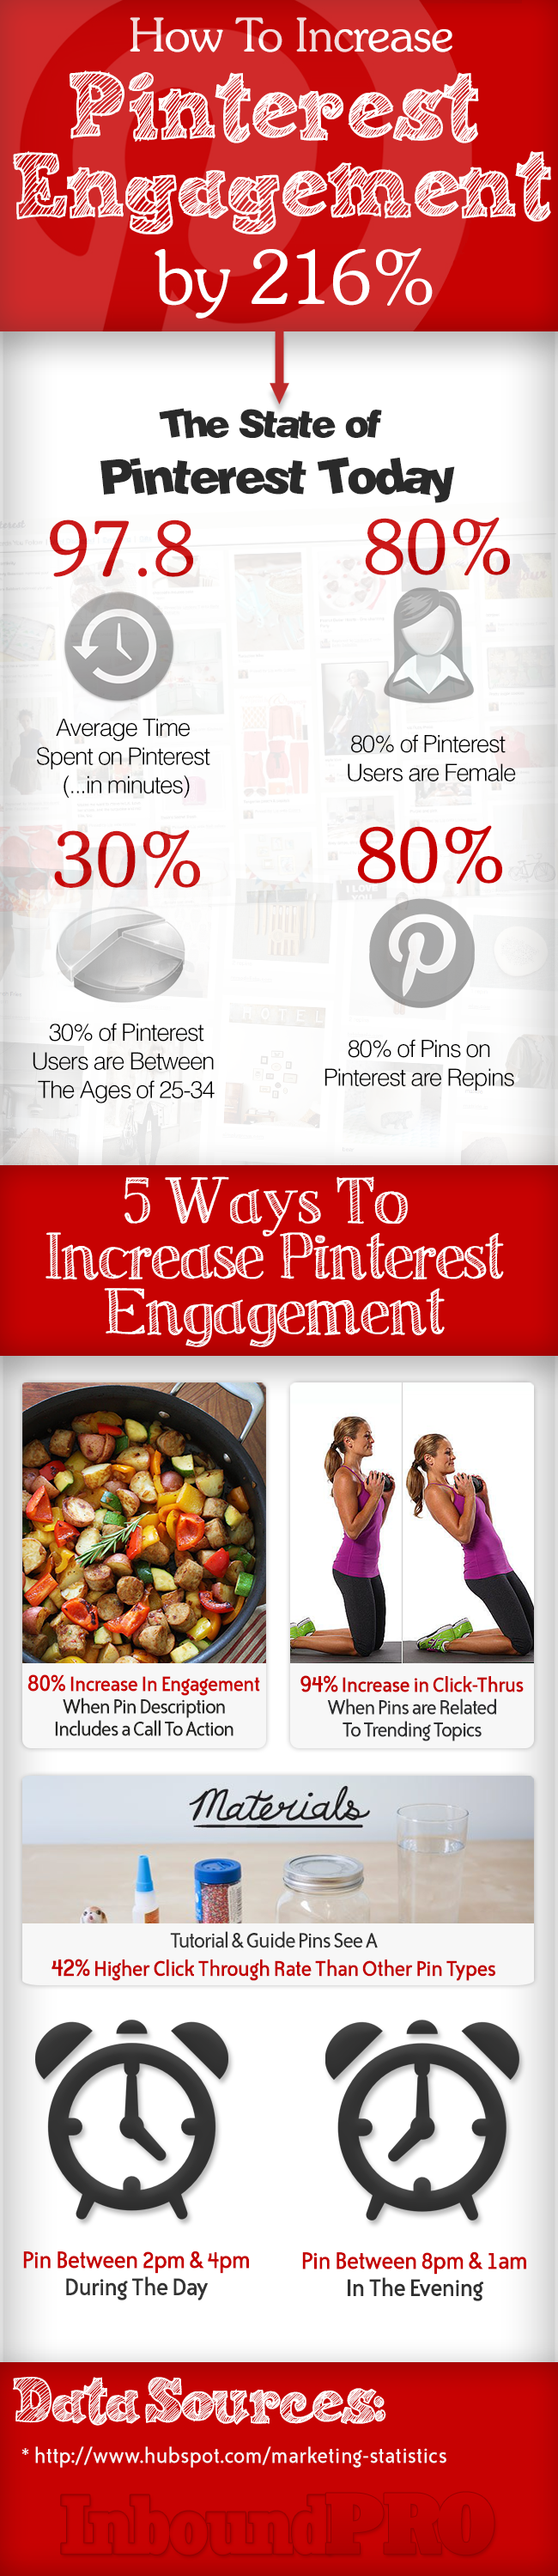 How To Boost Engagement On Pinterest - infographic